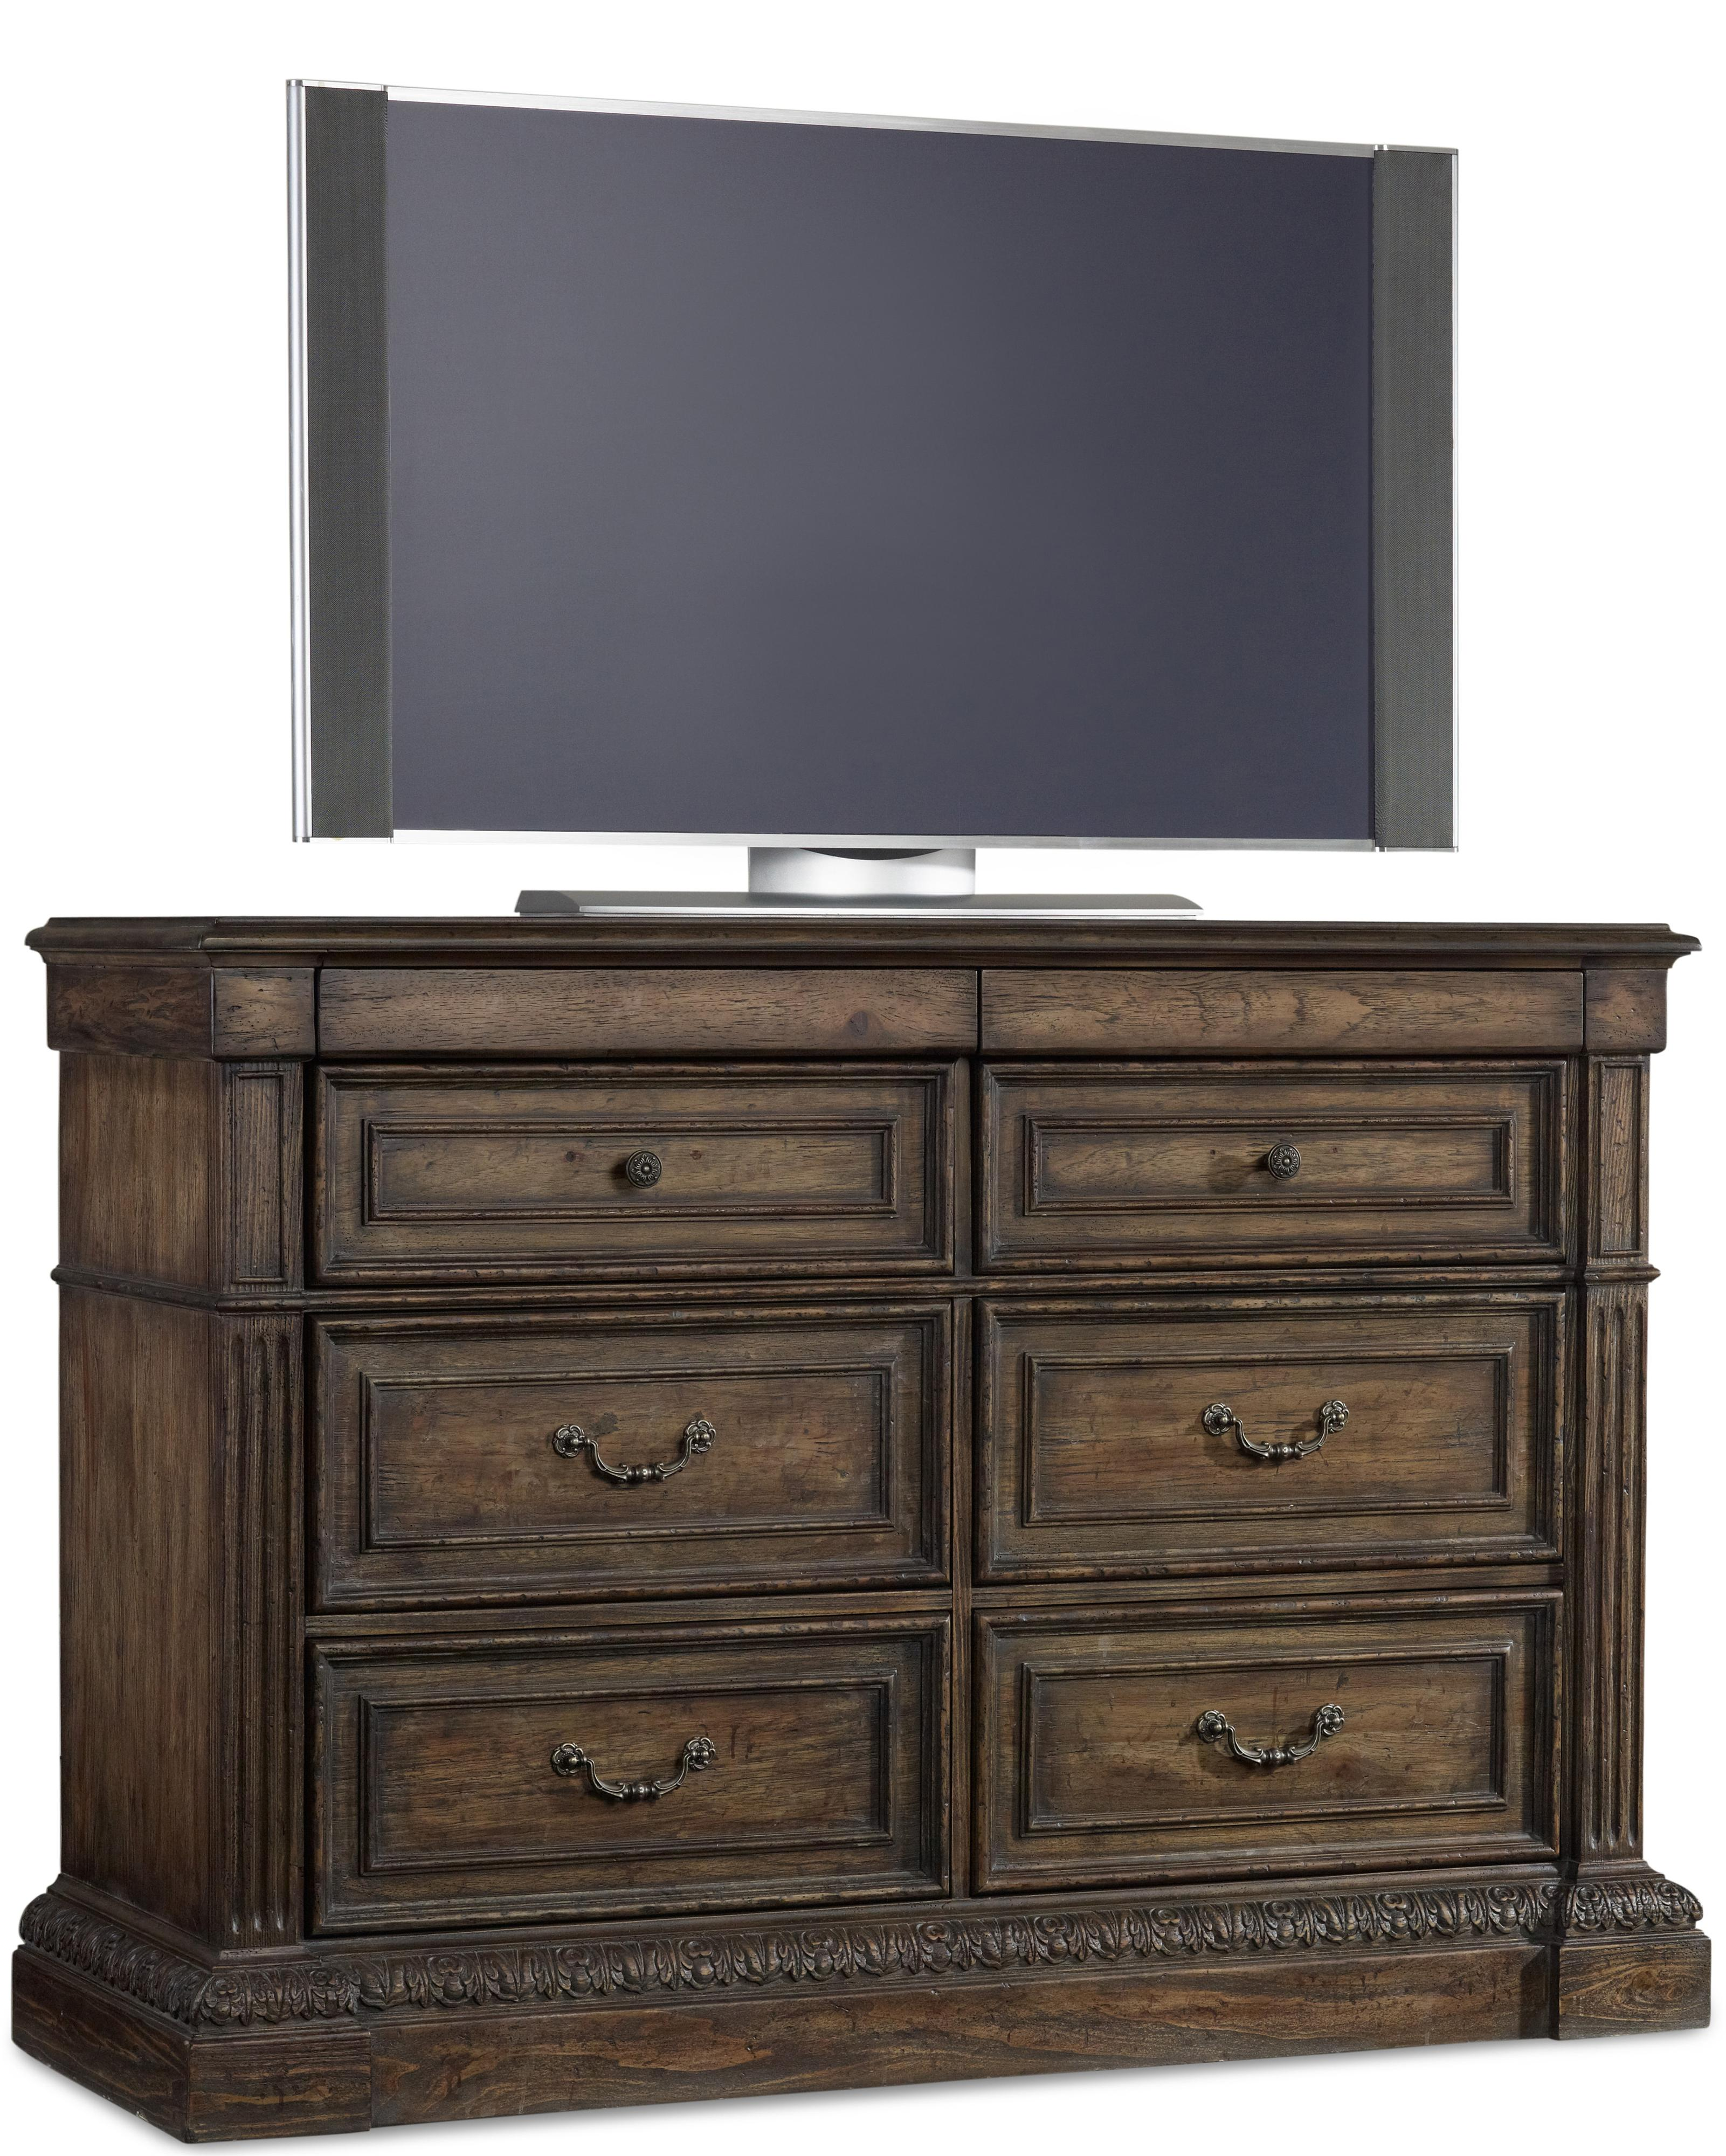 Rhapsody Media Chest by Hooker Furniture at Baer's Furniture